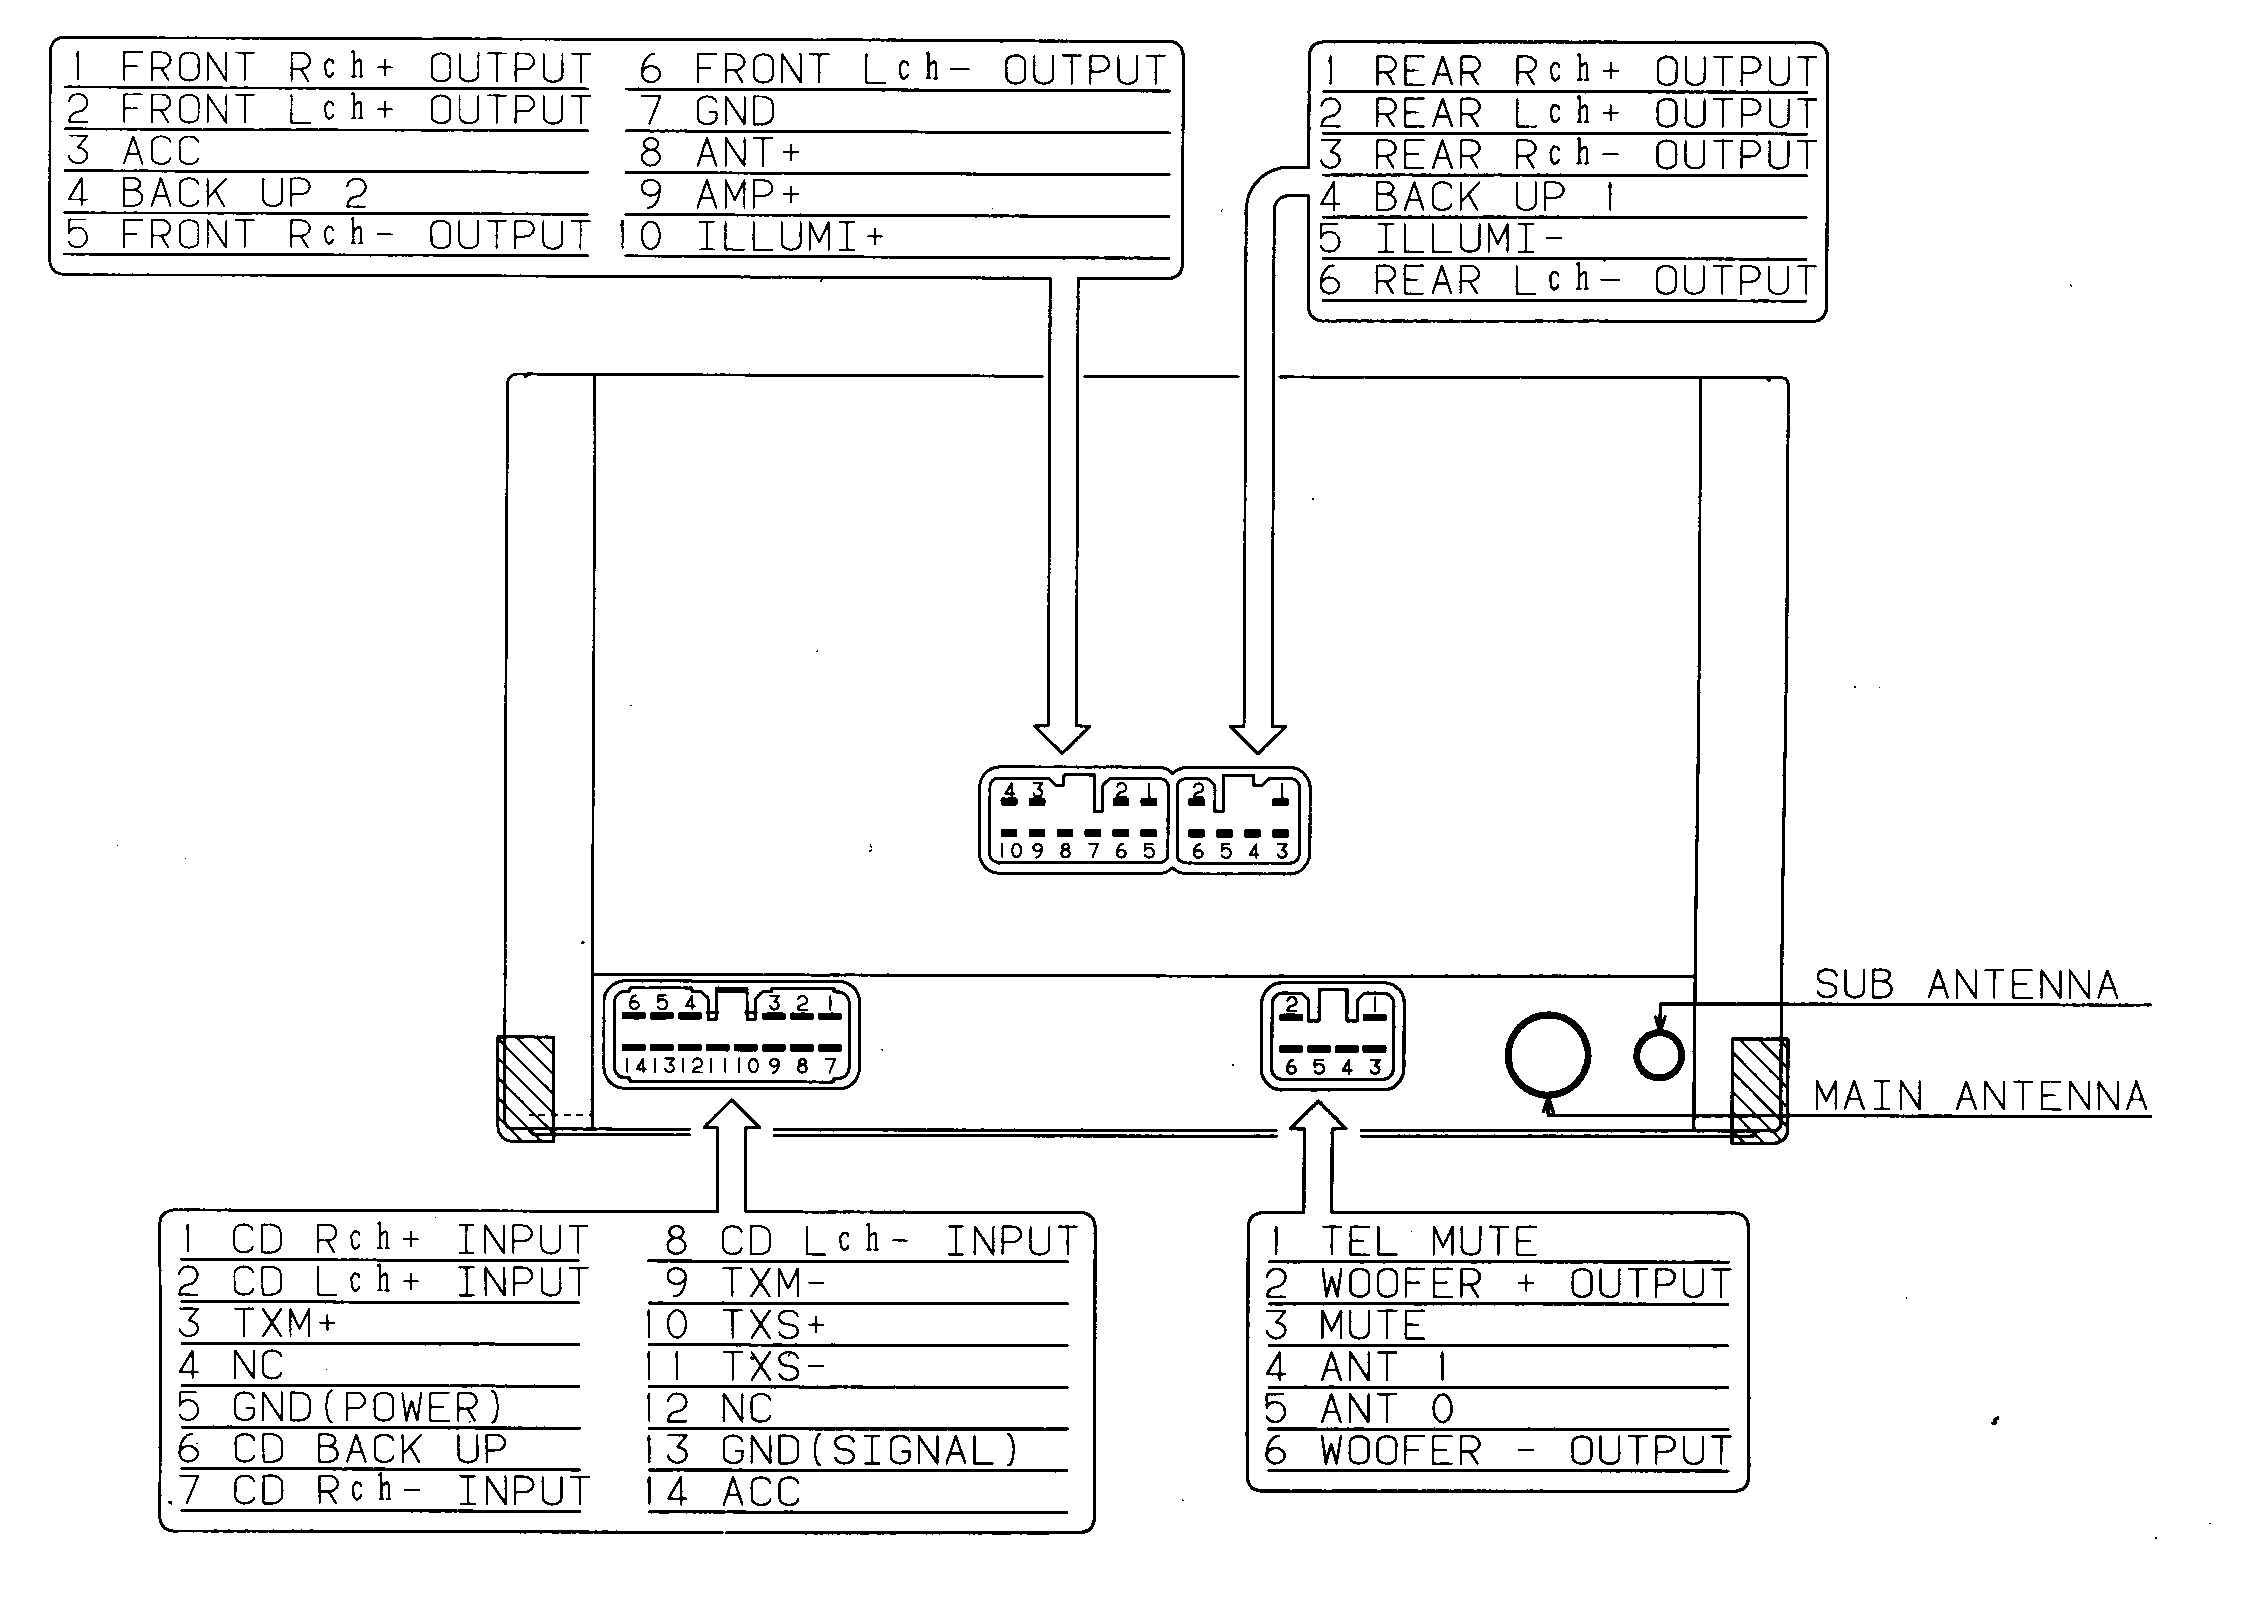 Lexus car stereo wiring diagram harness pinout connector wire lexus rx330 radio wiring diagram lexus rx330 parts diagram lexus rx300 wiring diagram at eliteediting.co